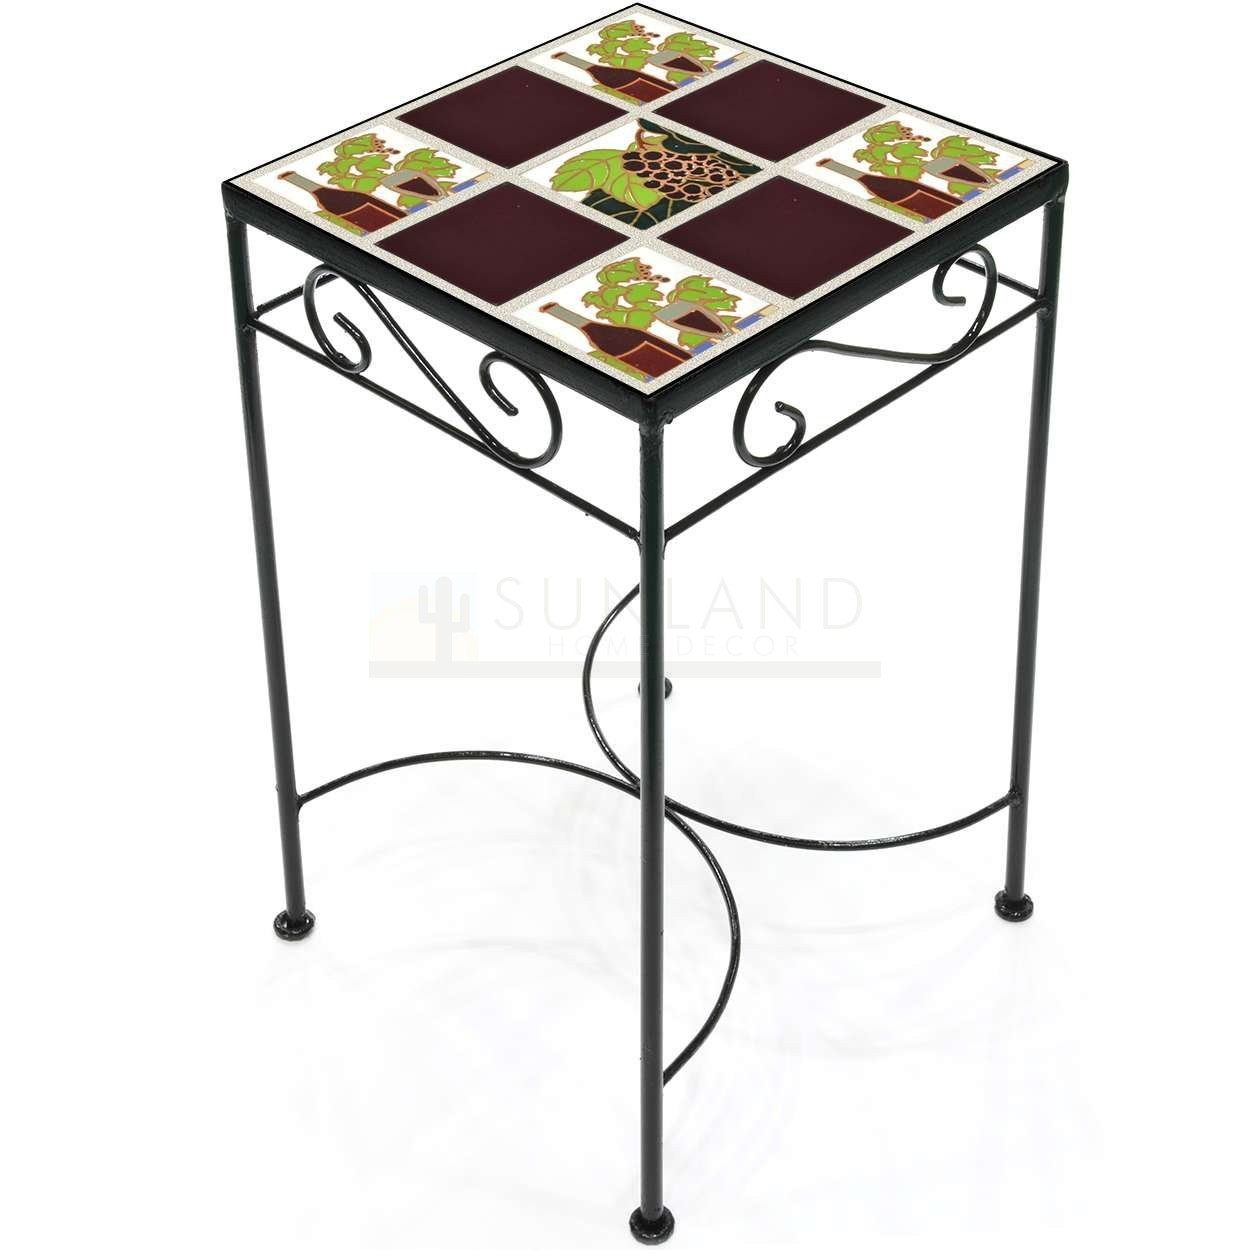 tile accent table wine and grapes burgundy tall square metal glass pendant shades grey patio furniture carpet door strip inn antique coffee legs white couch covers pier imports